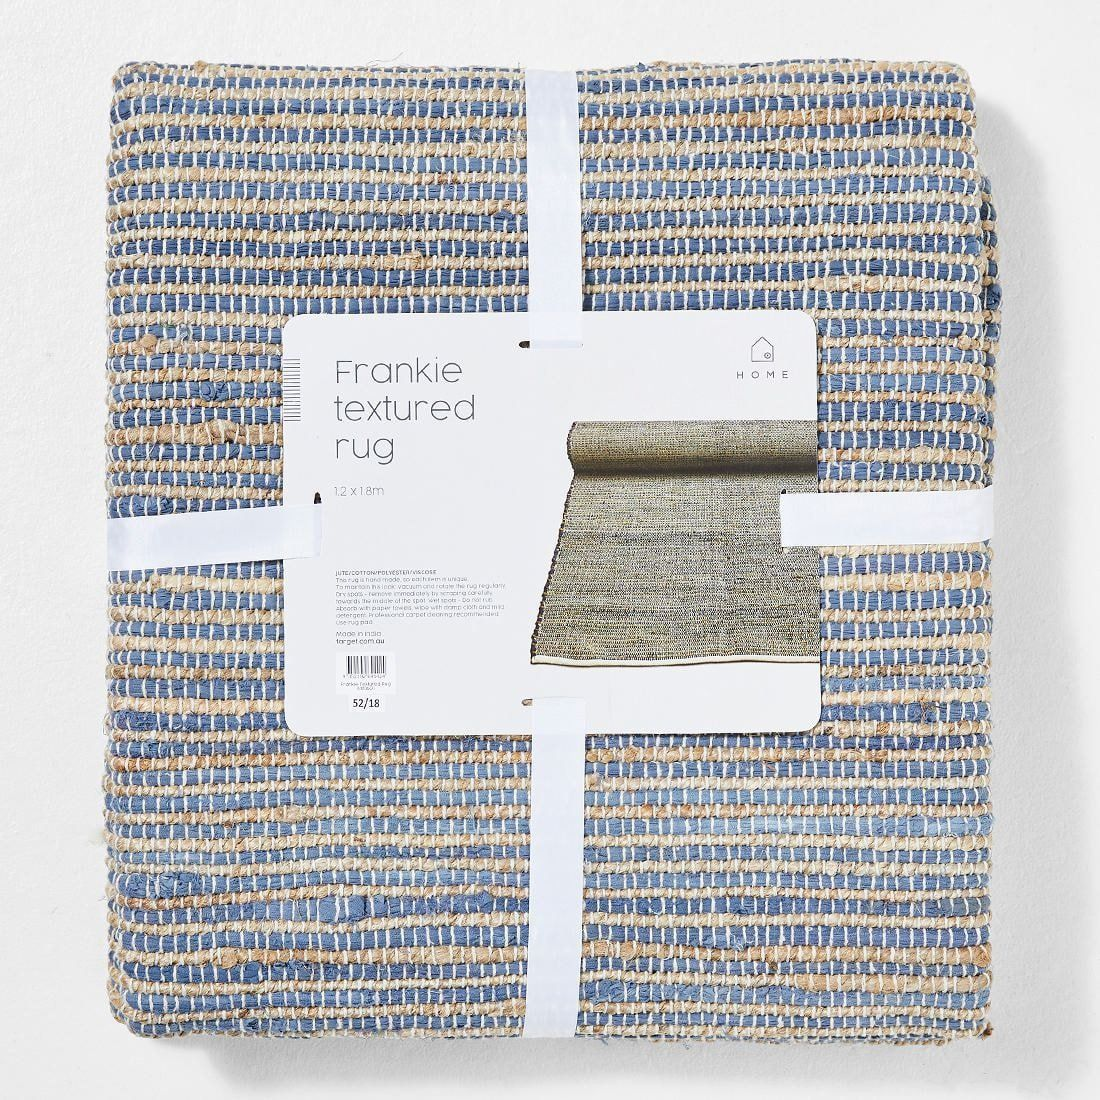 Paris Bedroom Decor Target Awesome Frankie Textured Rug in 8